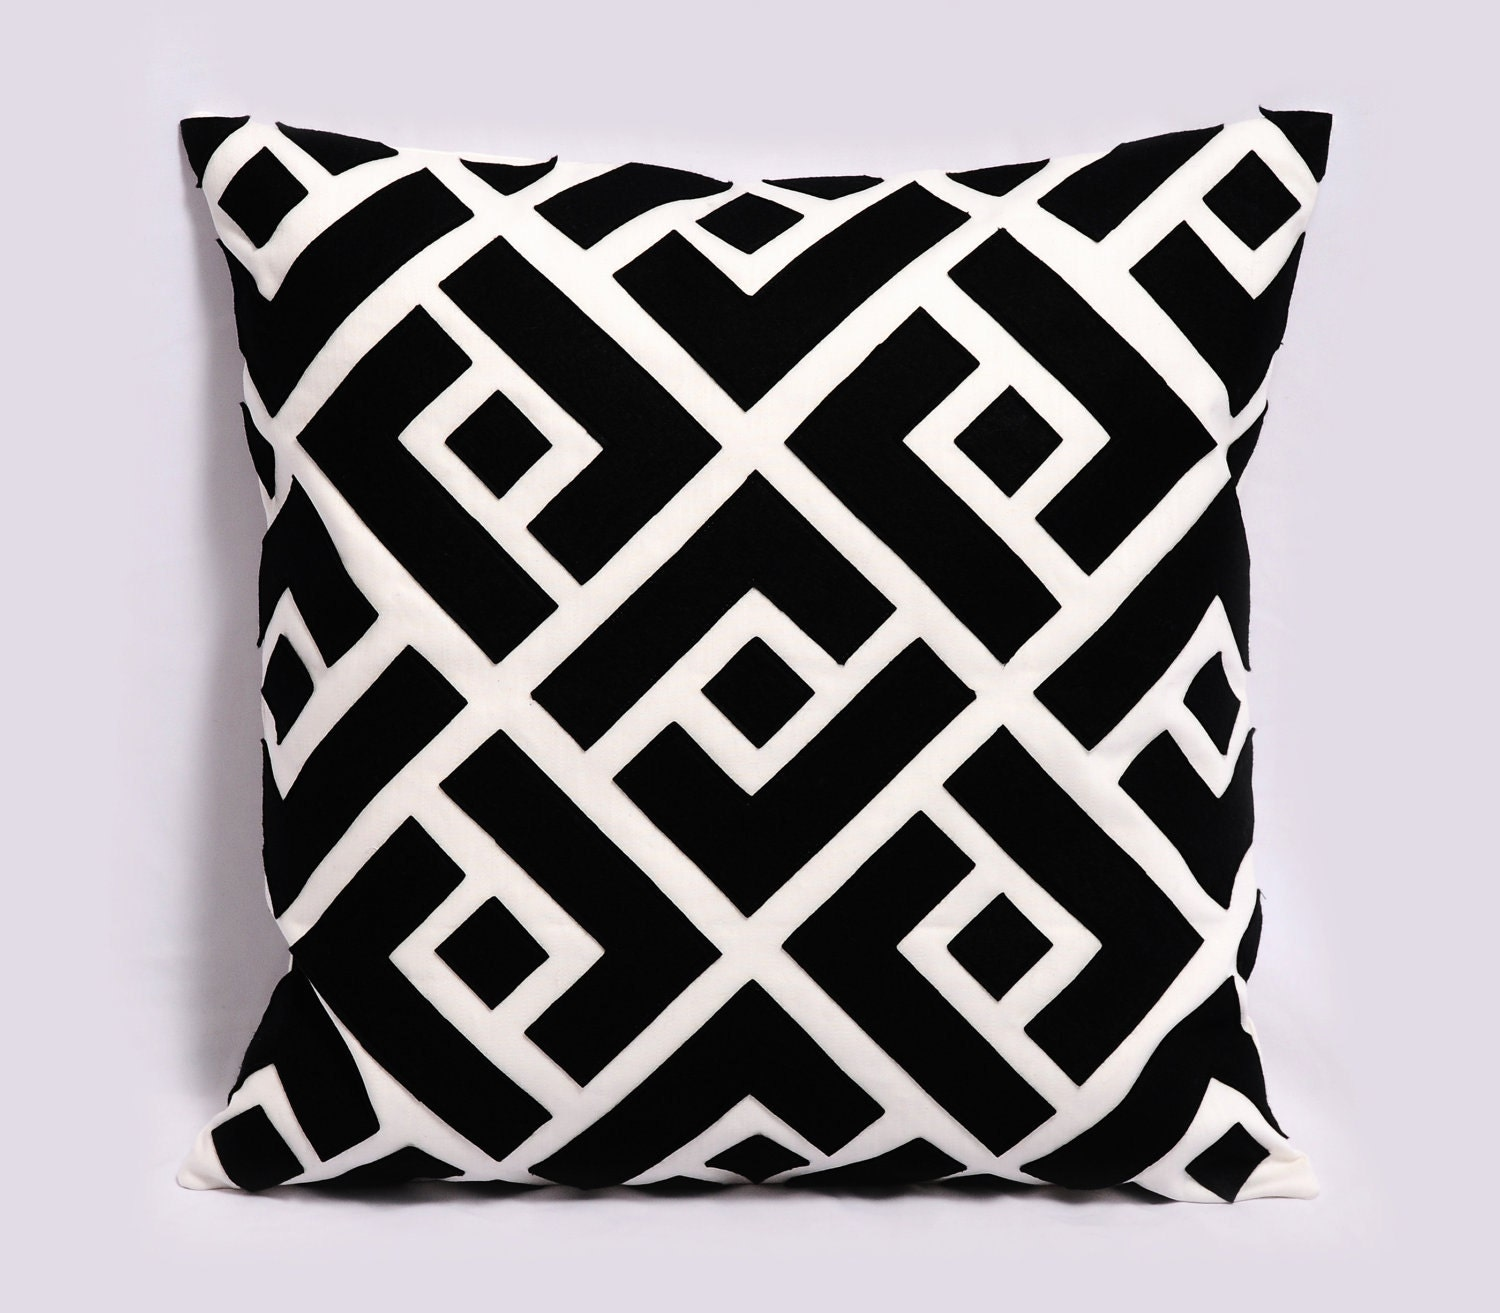 items similar to black and white pillow cover decorative pillows black throw pillow 18x18. Black Bedroom Furniture Sets. Home Design Ideas